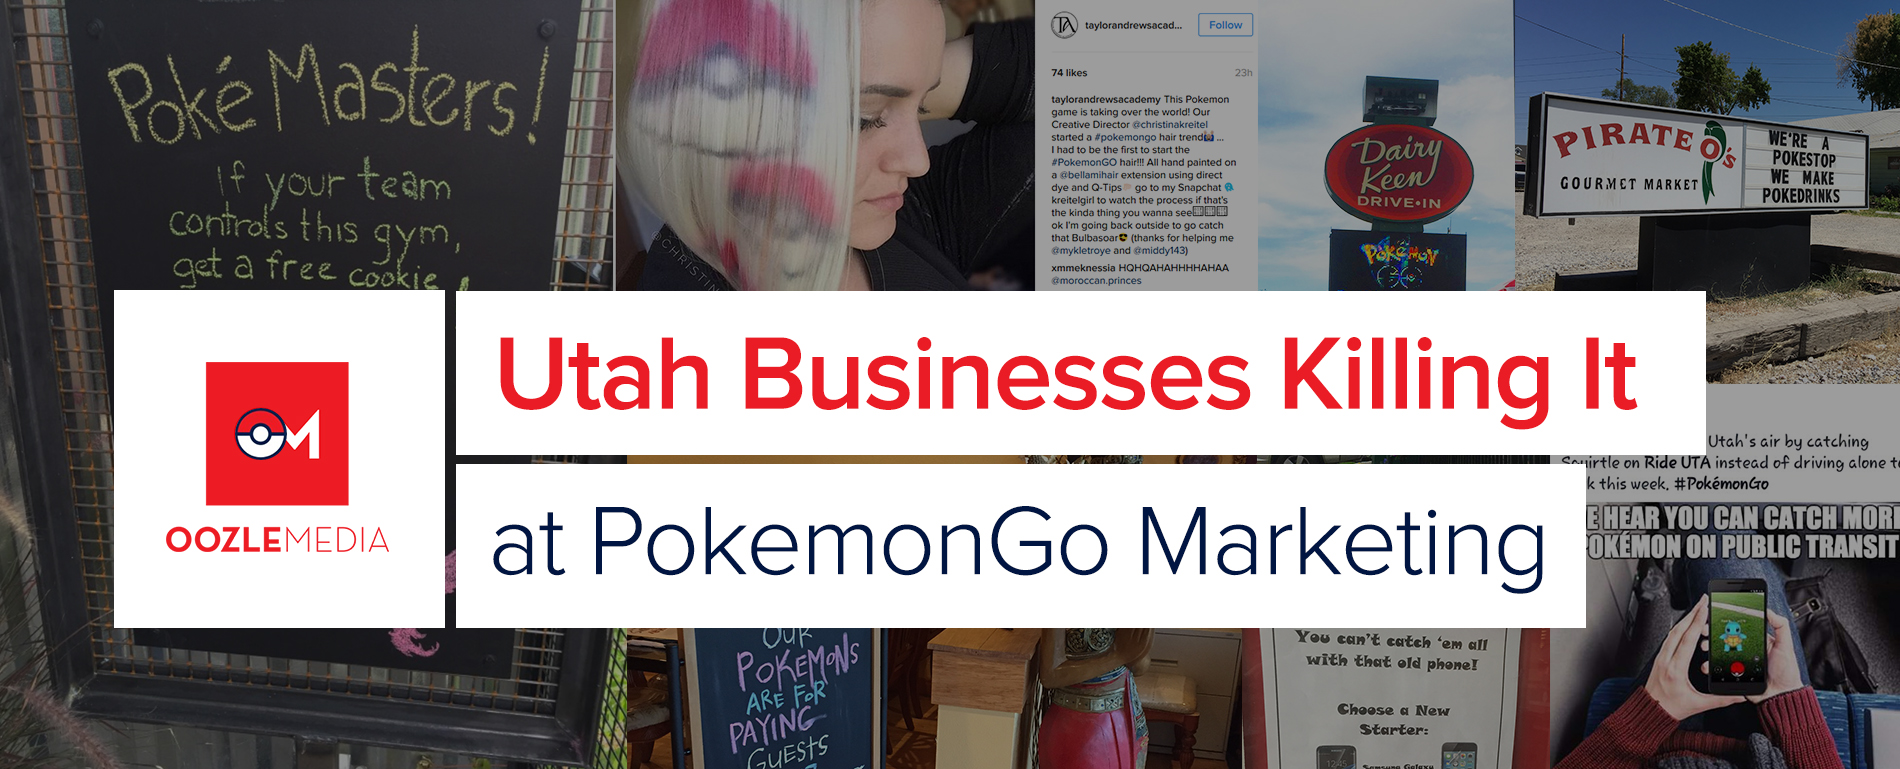 PokemonGo Marketing Oozle Media